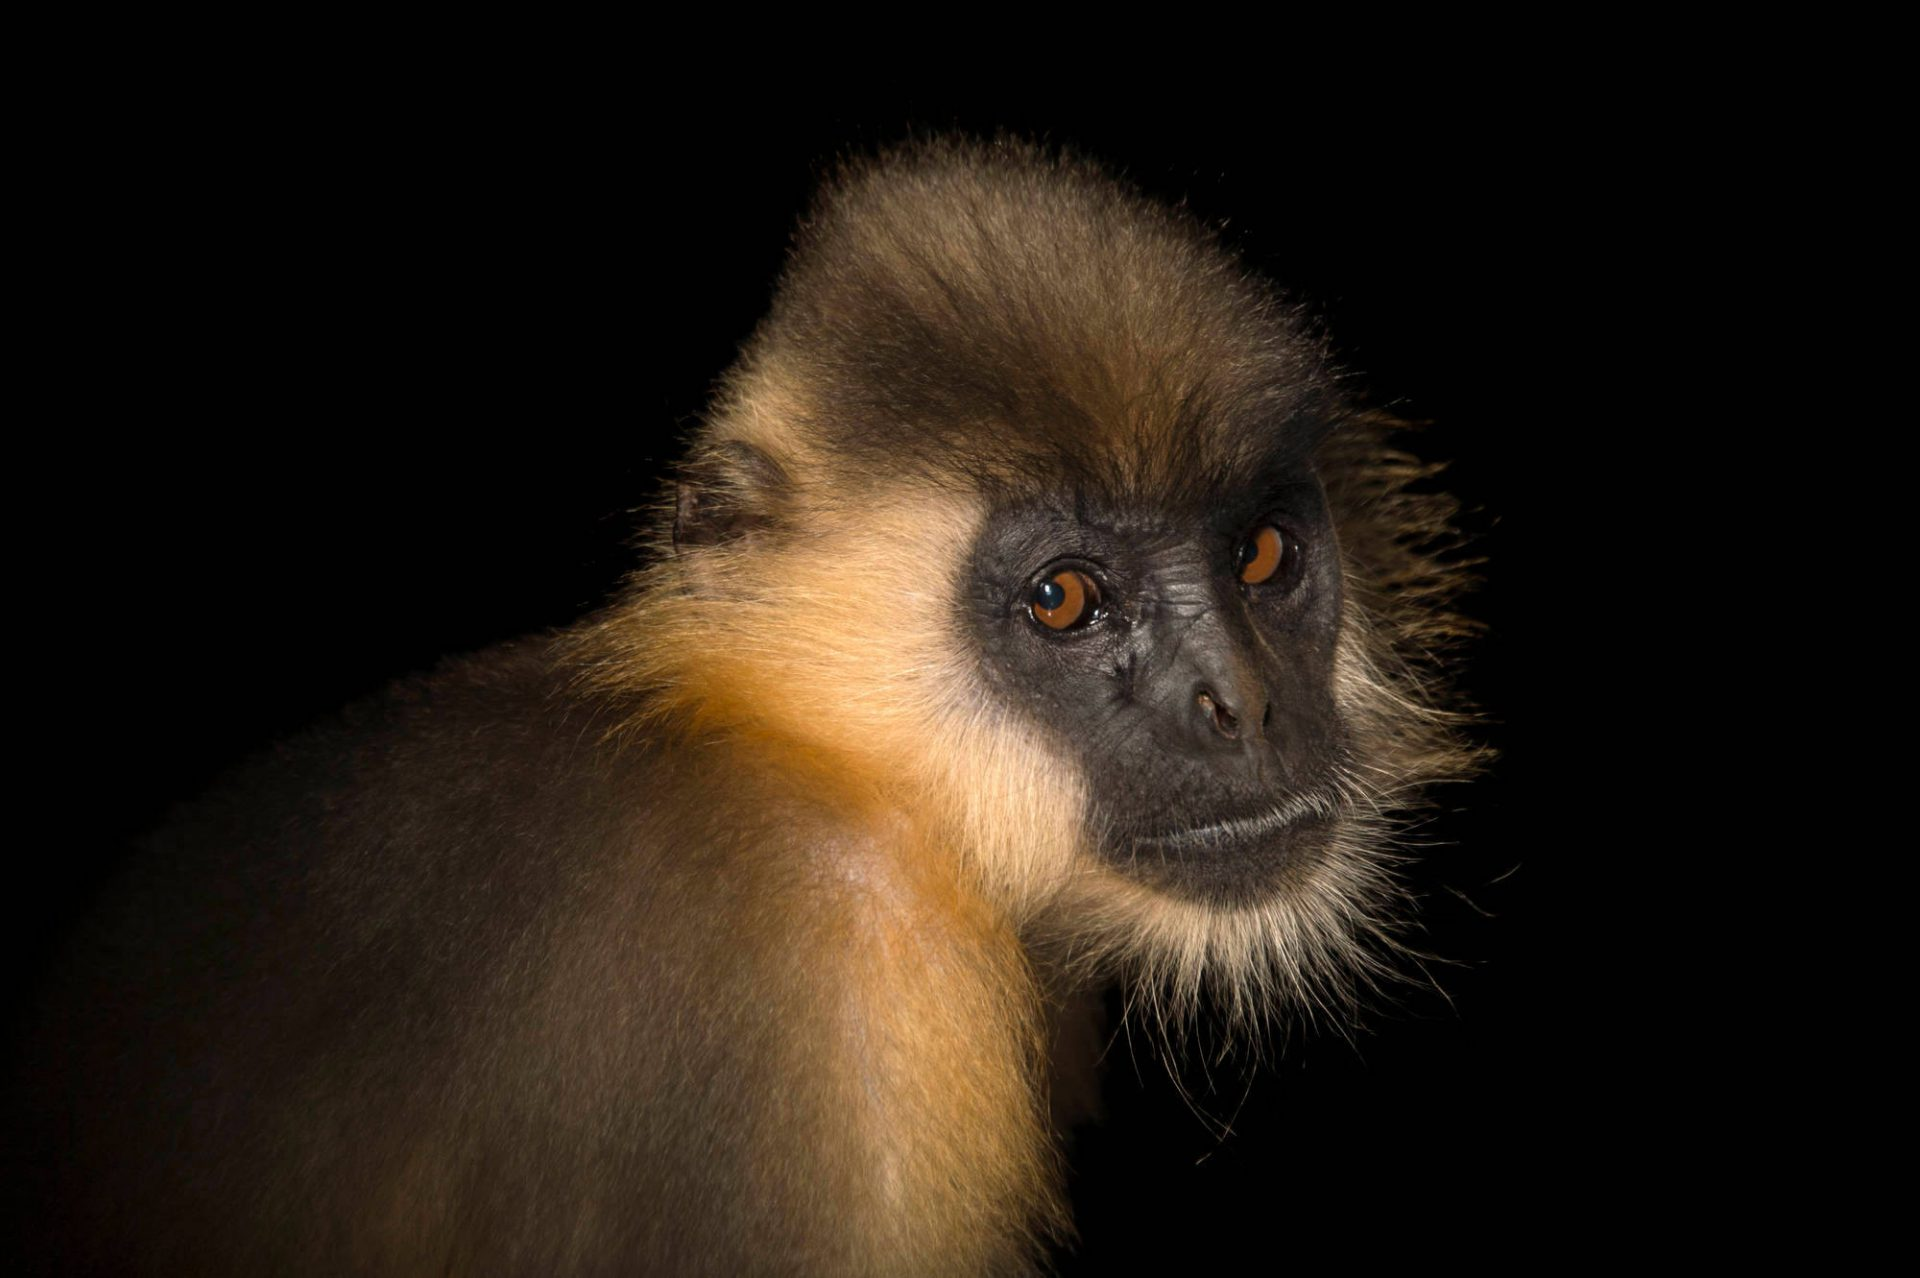 Photo: Capped langur (Trachypithecus pileatus) at the Assam State Zoo in Guwahati, Assam, India.